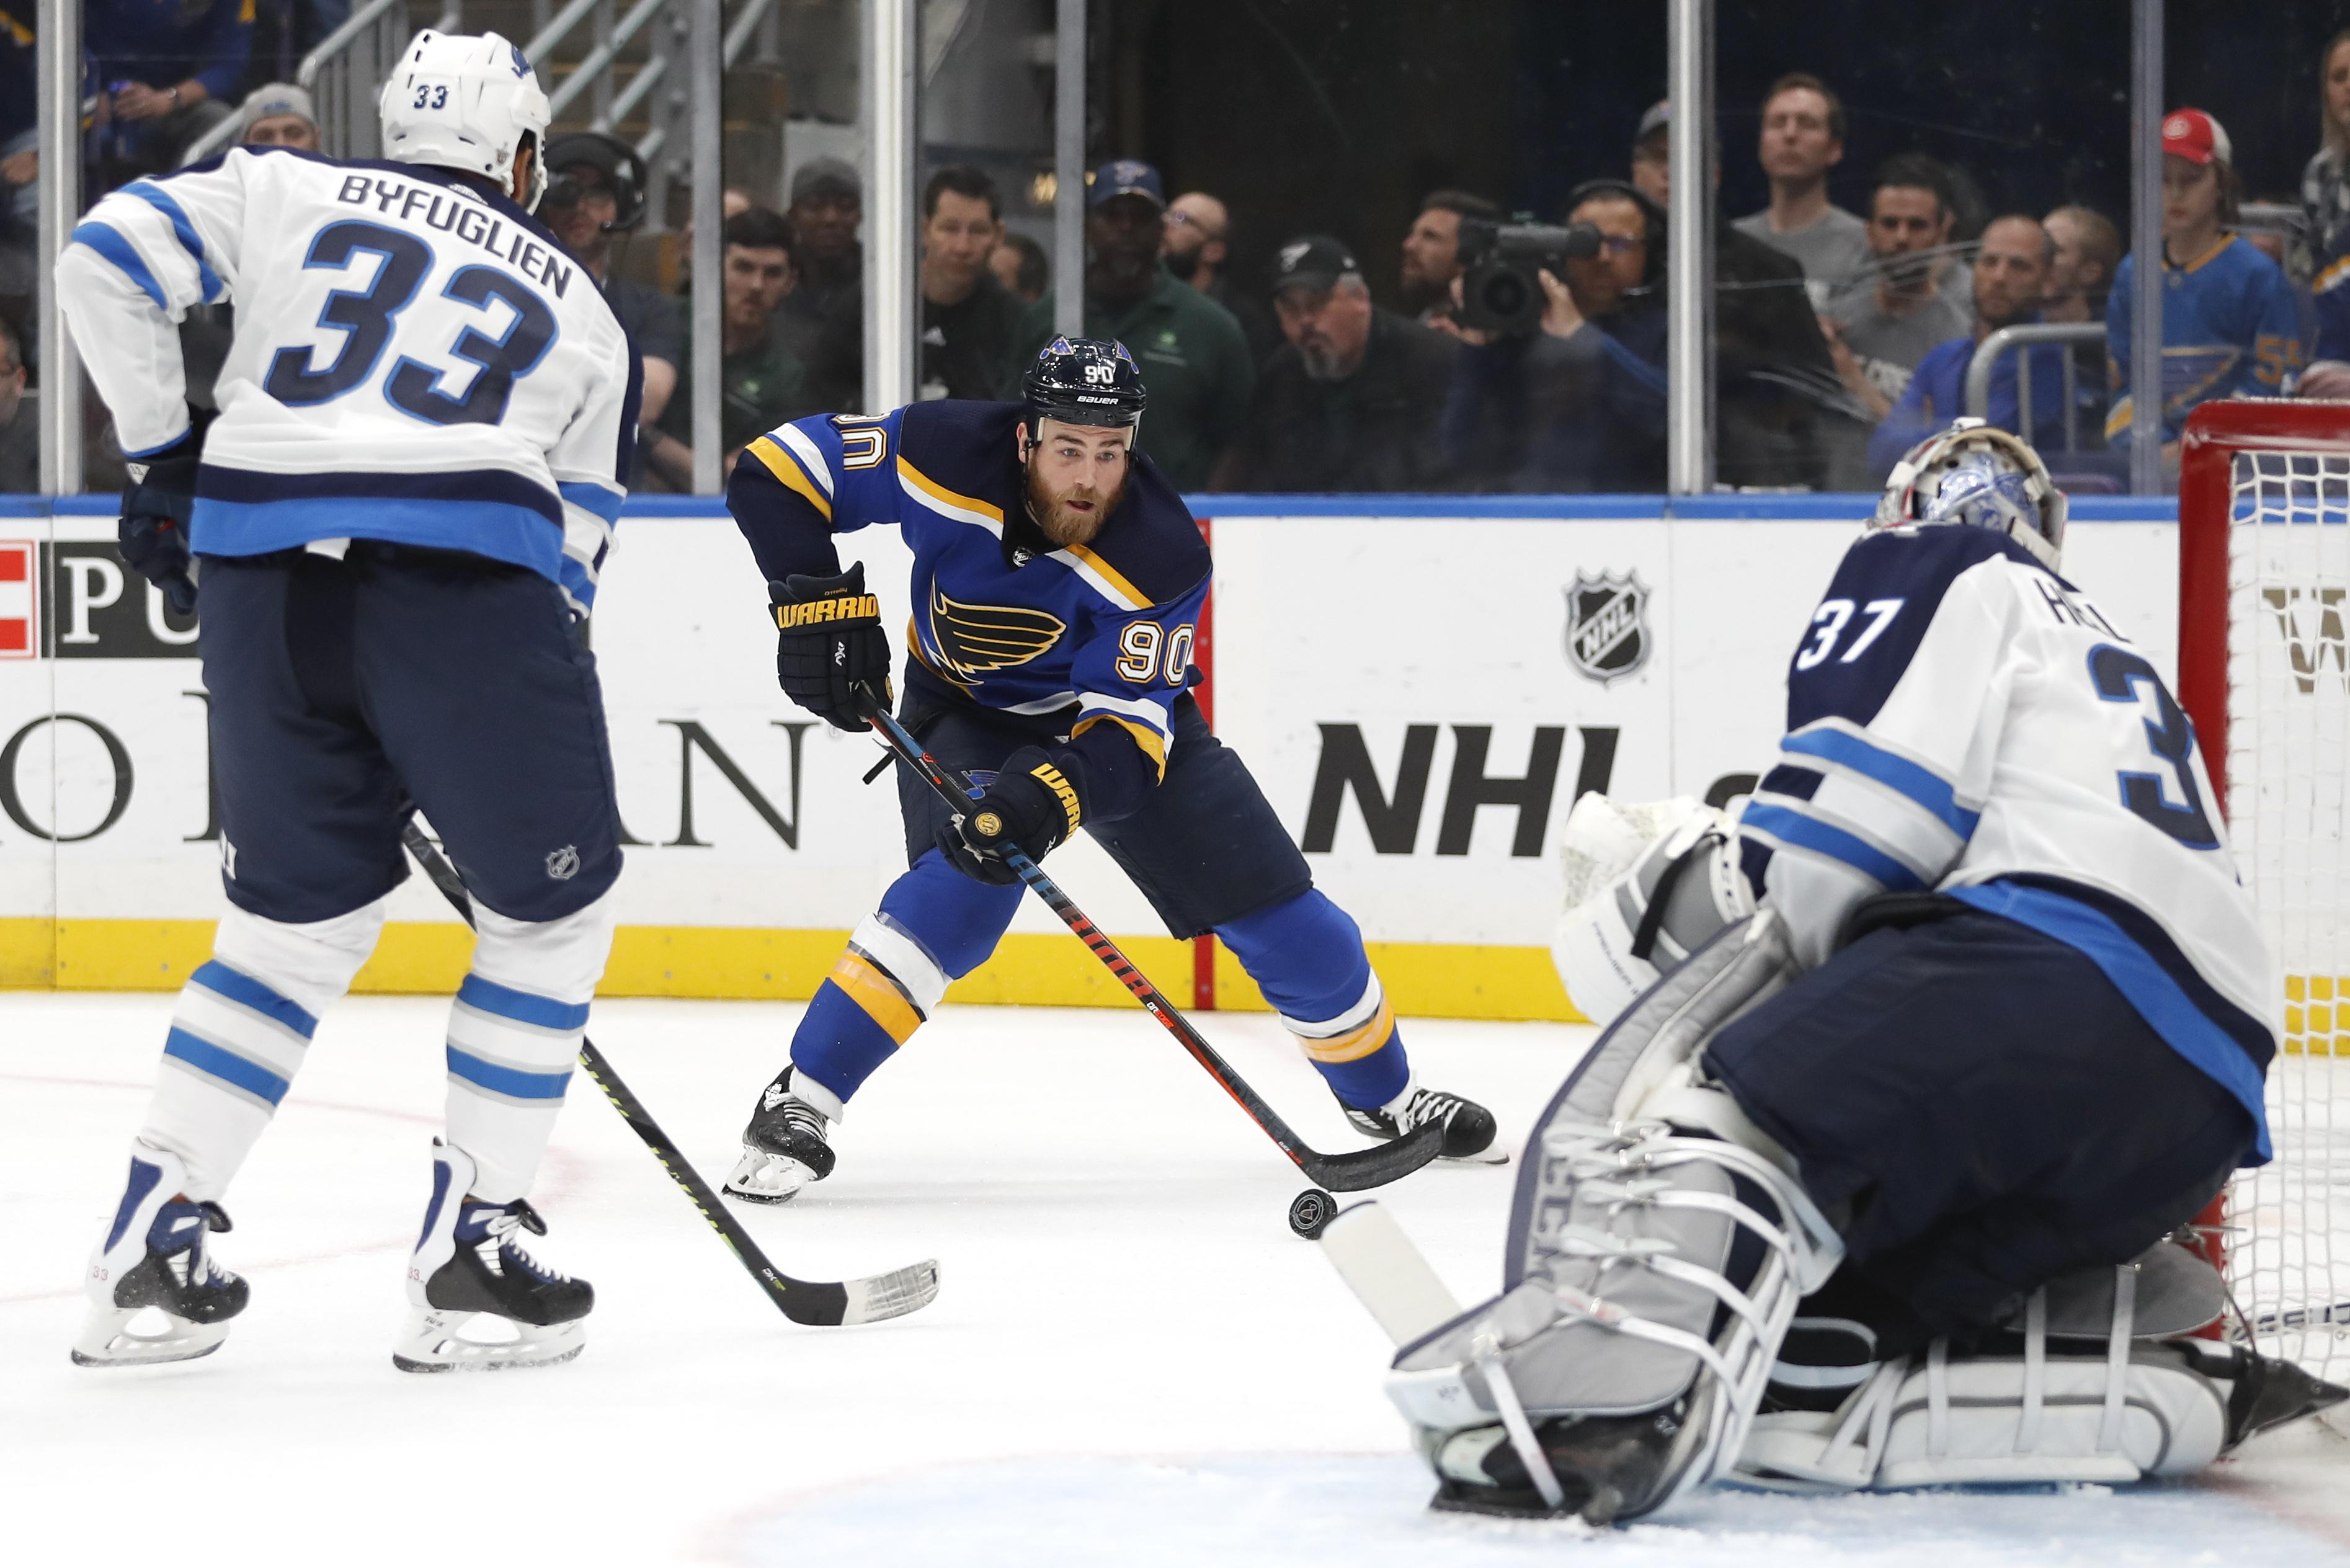 9b957e3aa12c Ryan O'Reilly's luck turns, and so do Blues' fortunes | The ...